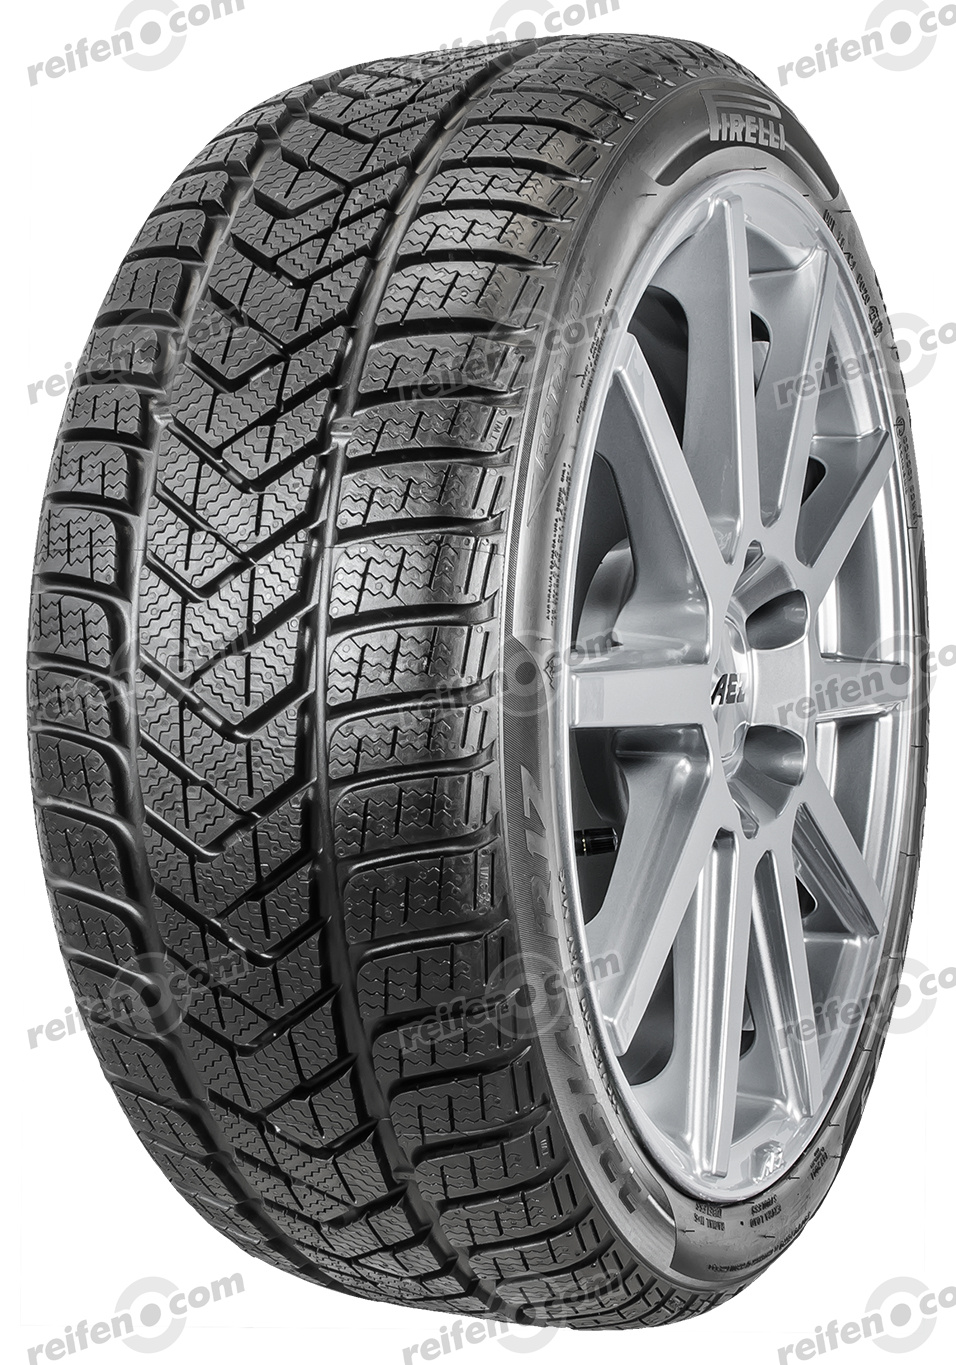 295/40 R20 110W Winter Sottozero 3 XL B M+S  Winter Sottozero 3 XL B M+S